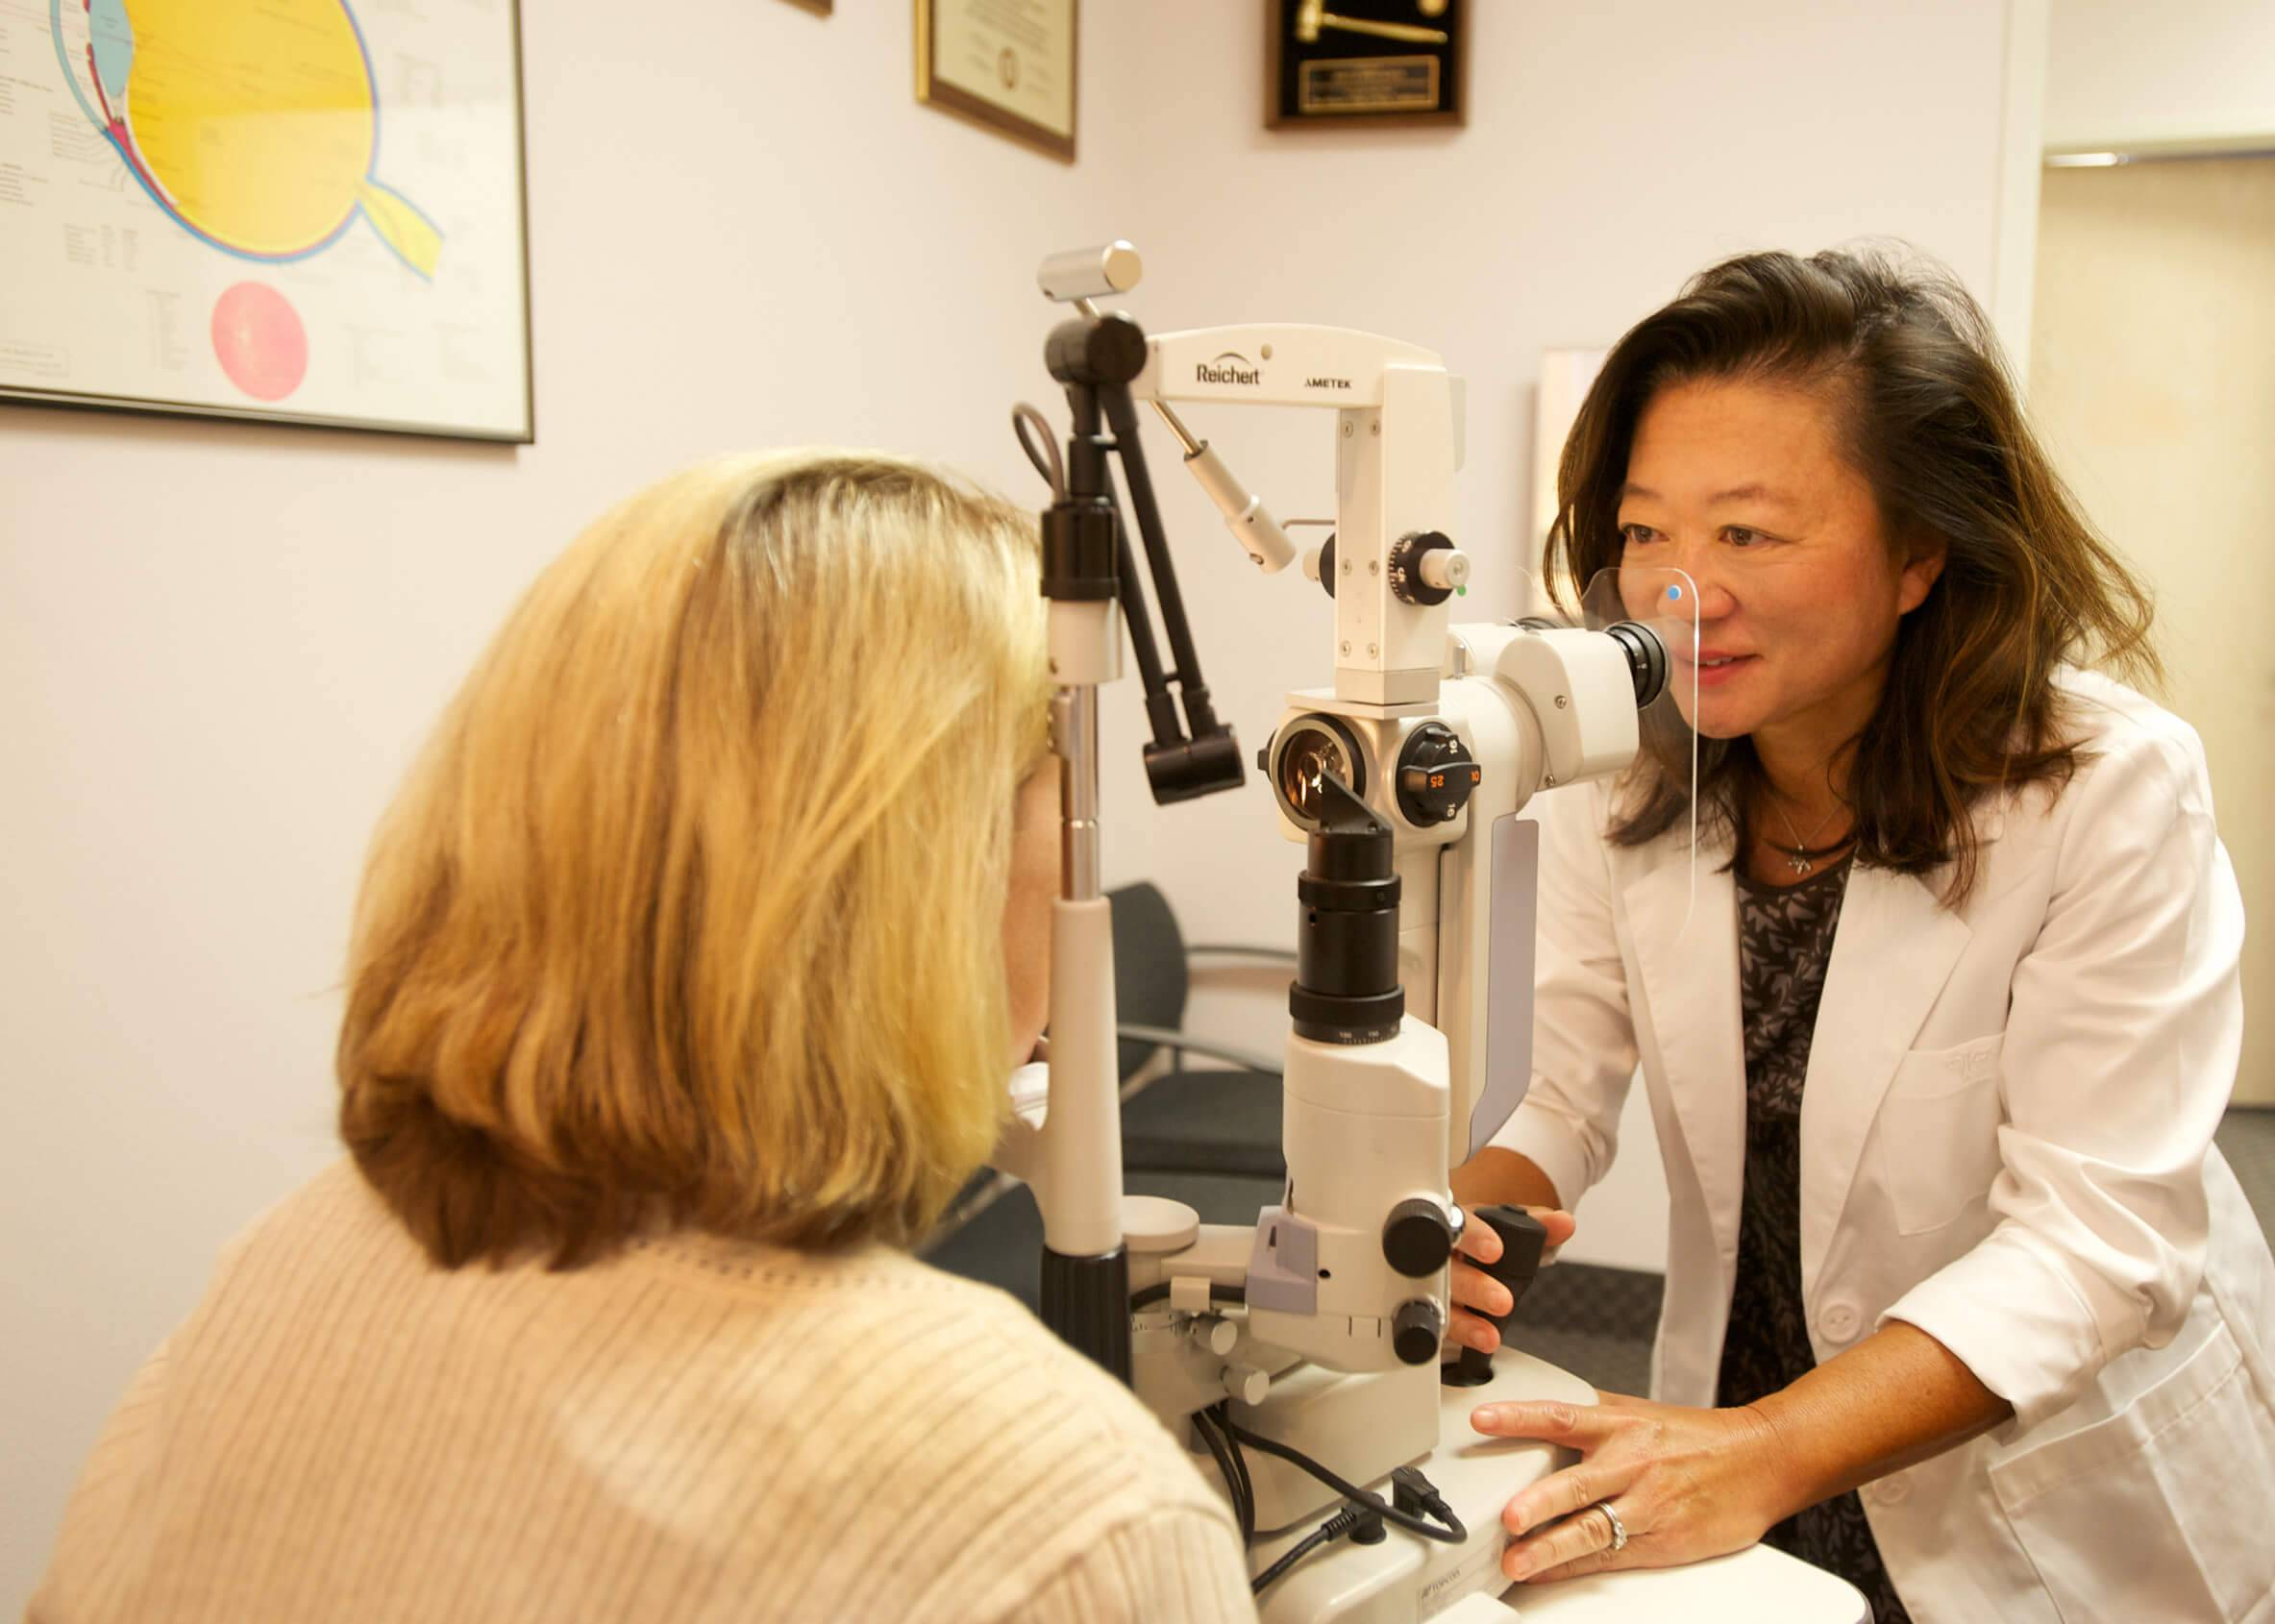 352b8ddefc5 Our eye care center offers a full range of eye health services to clients  of all ages